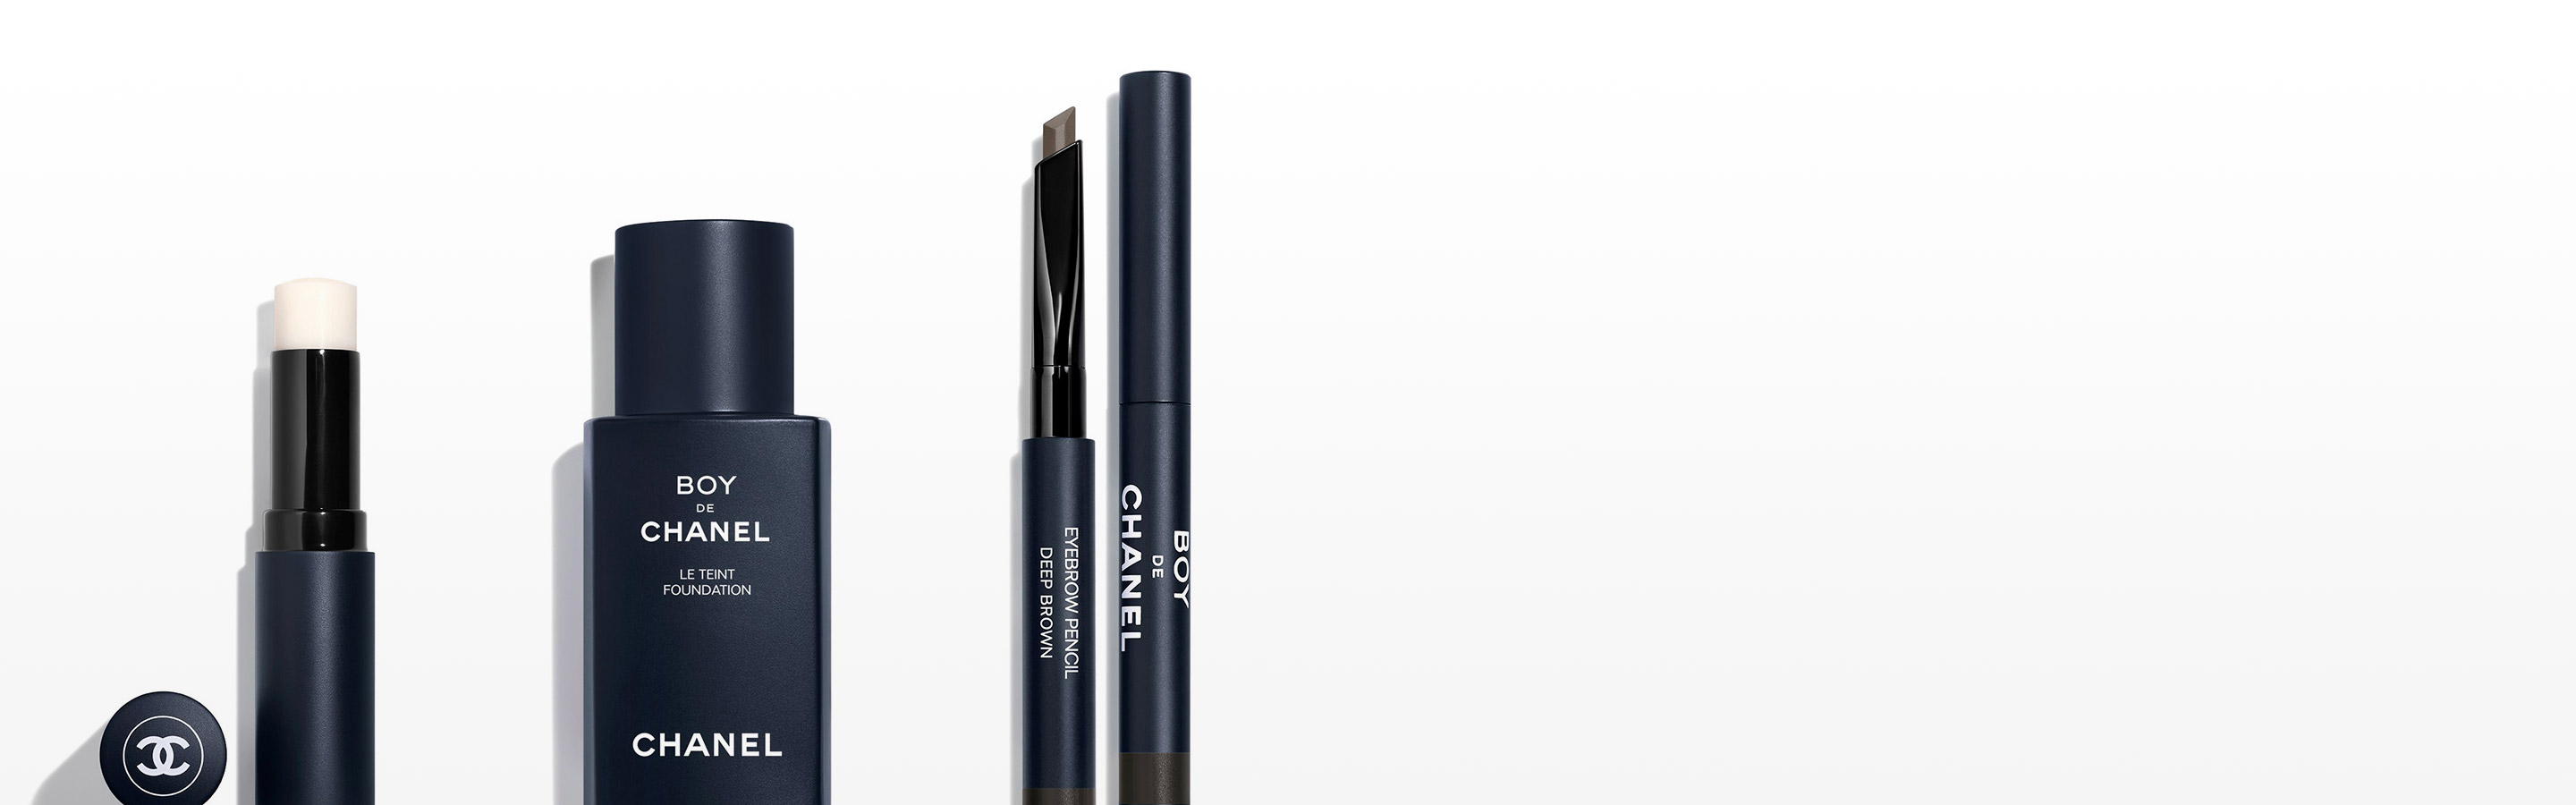 Boy de CHANEL Concealer - Makeup Official site